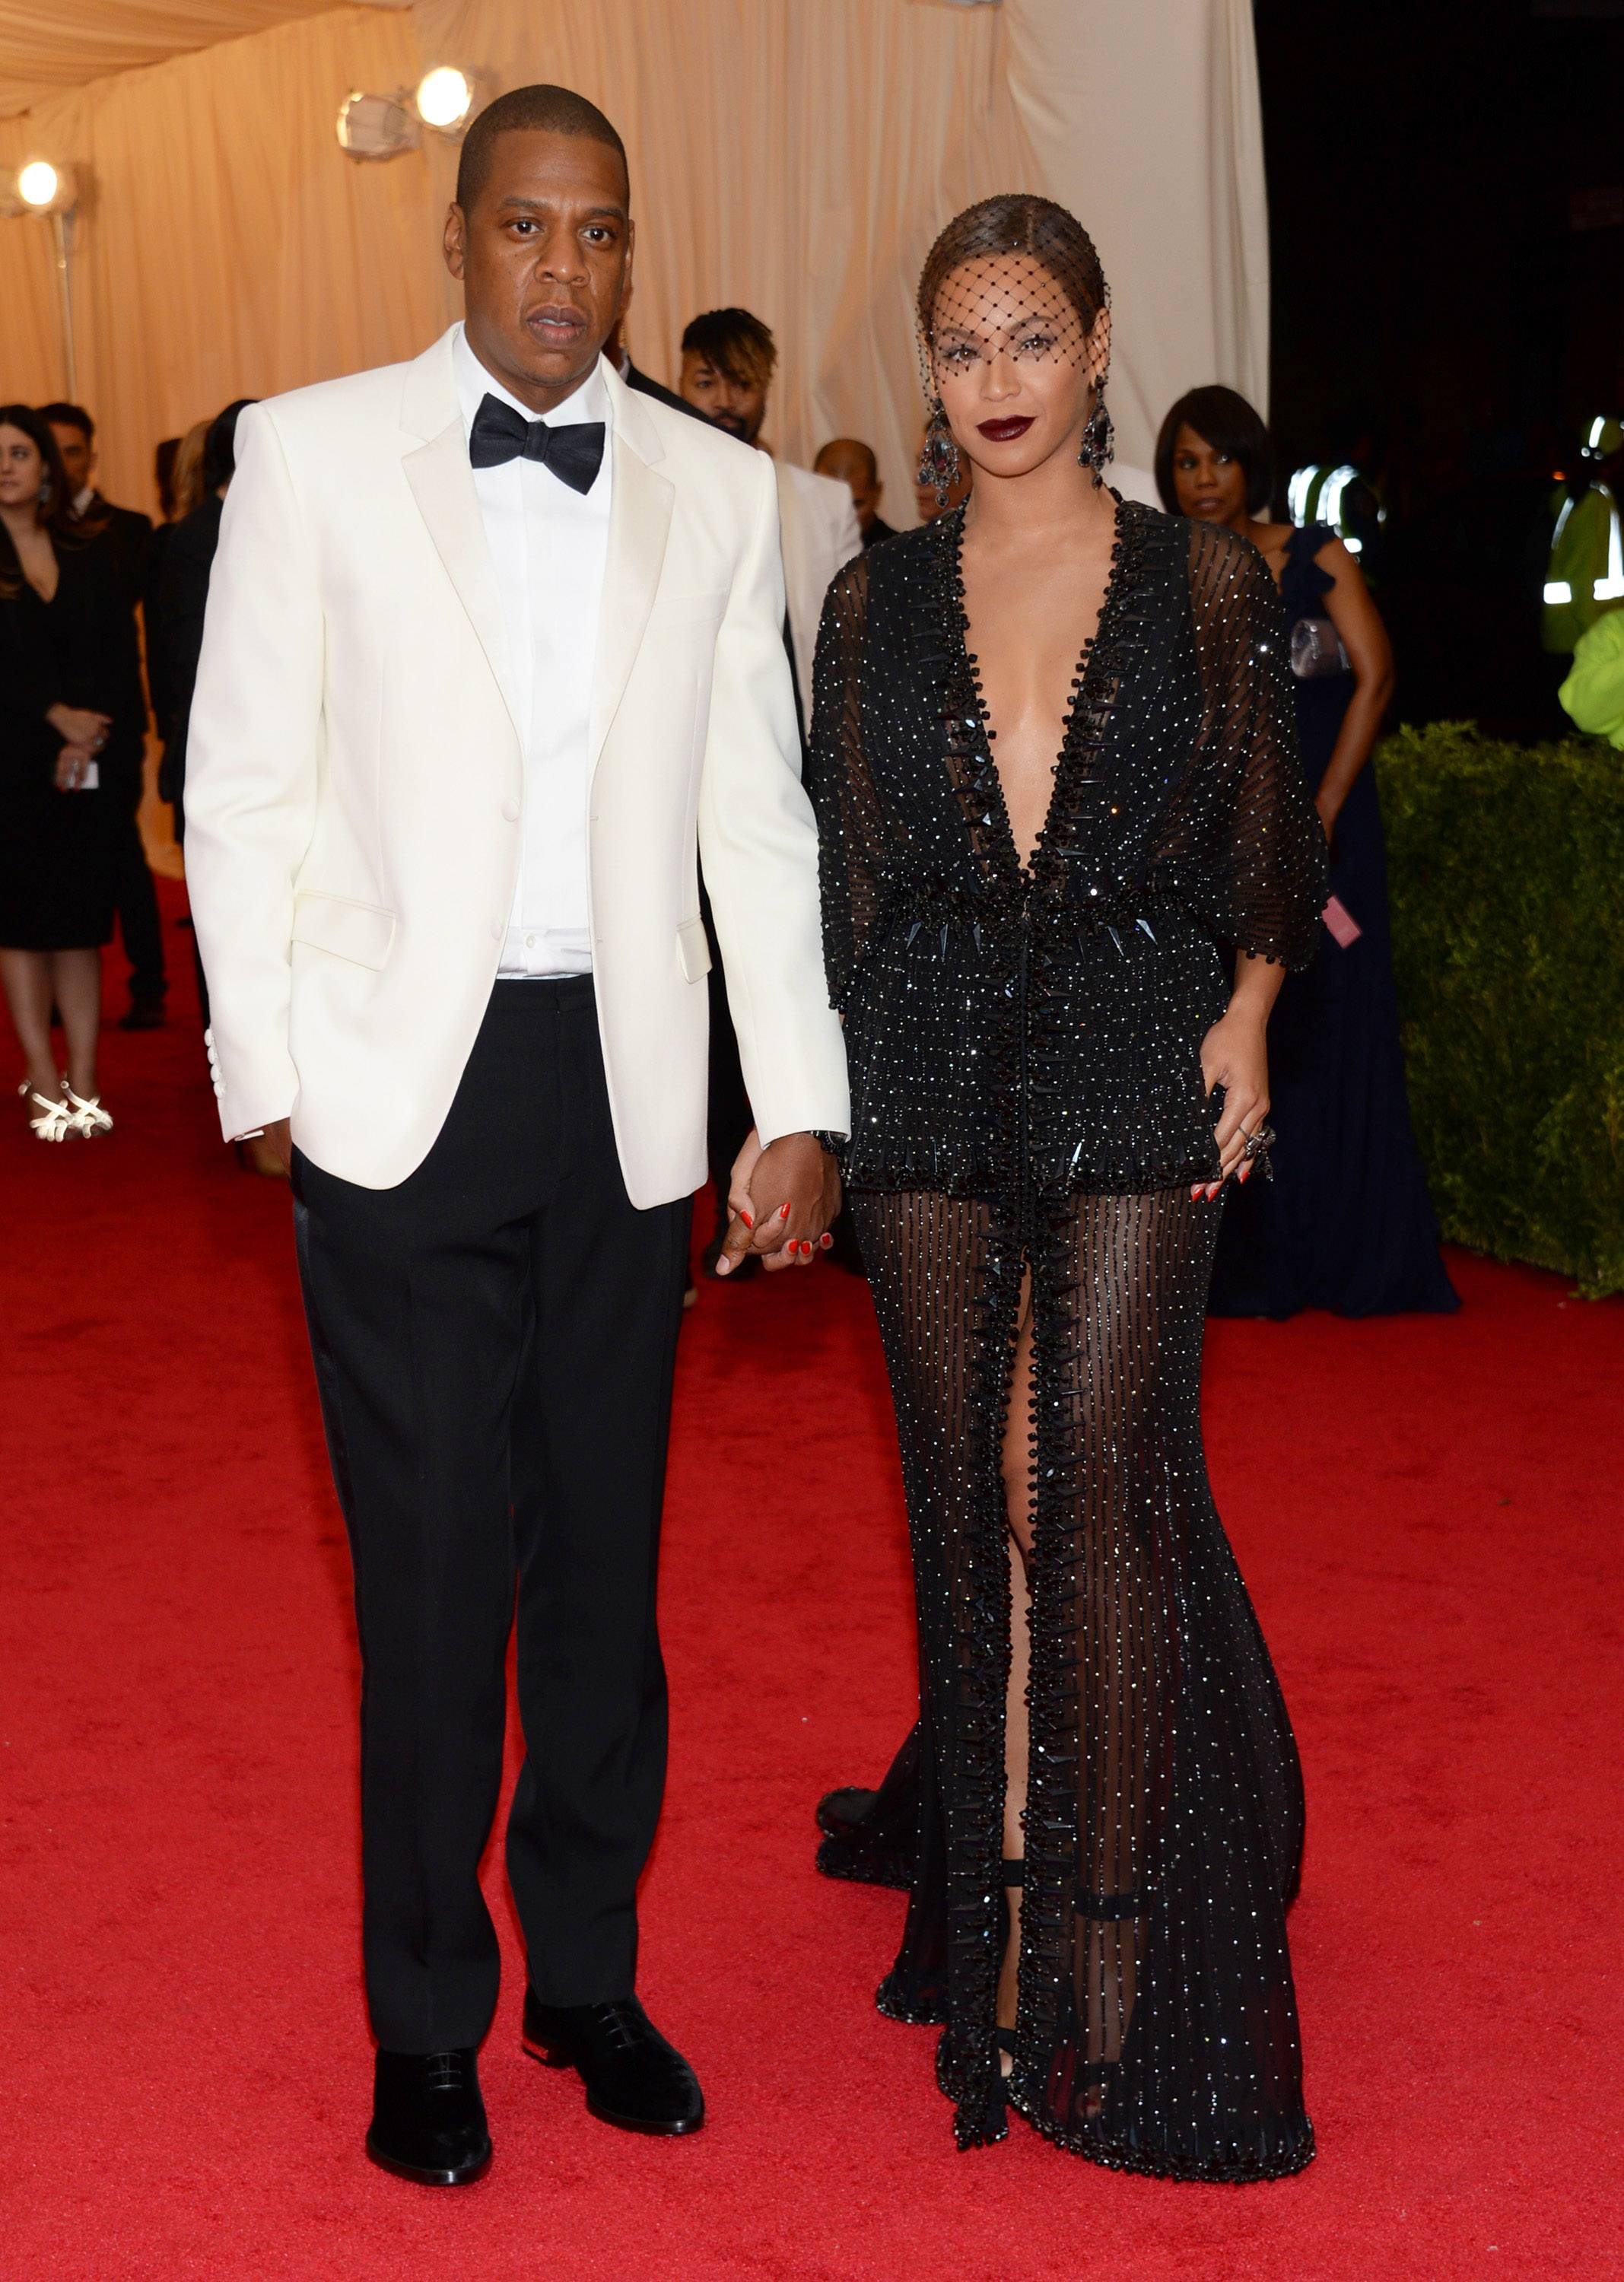 This photo of Jay Z and Beyoncé at The Metropolitan Museum of Art's Costume Institute benefit gala isn't nearly as compelling as the grainy surveillance video from the elevator ride that followed.